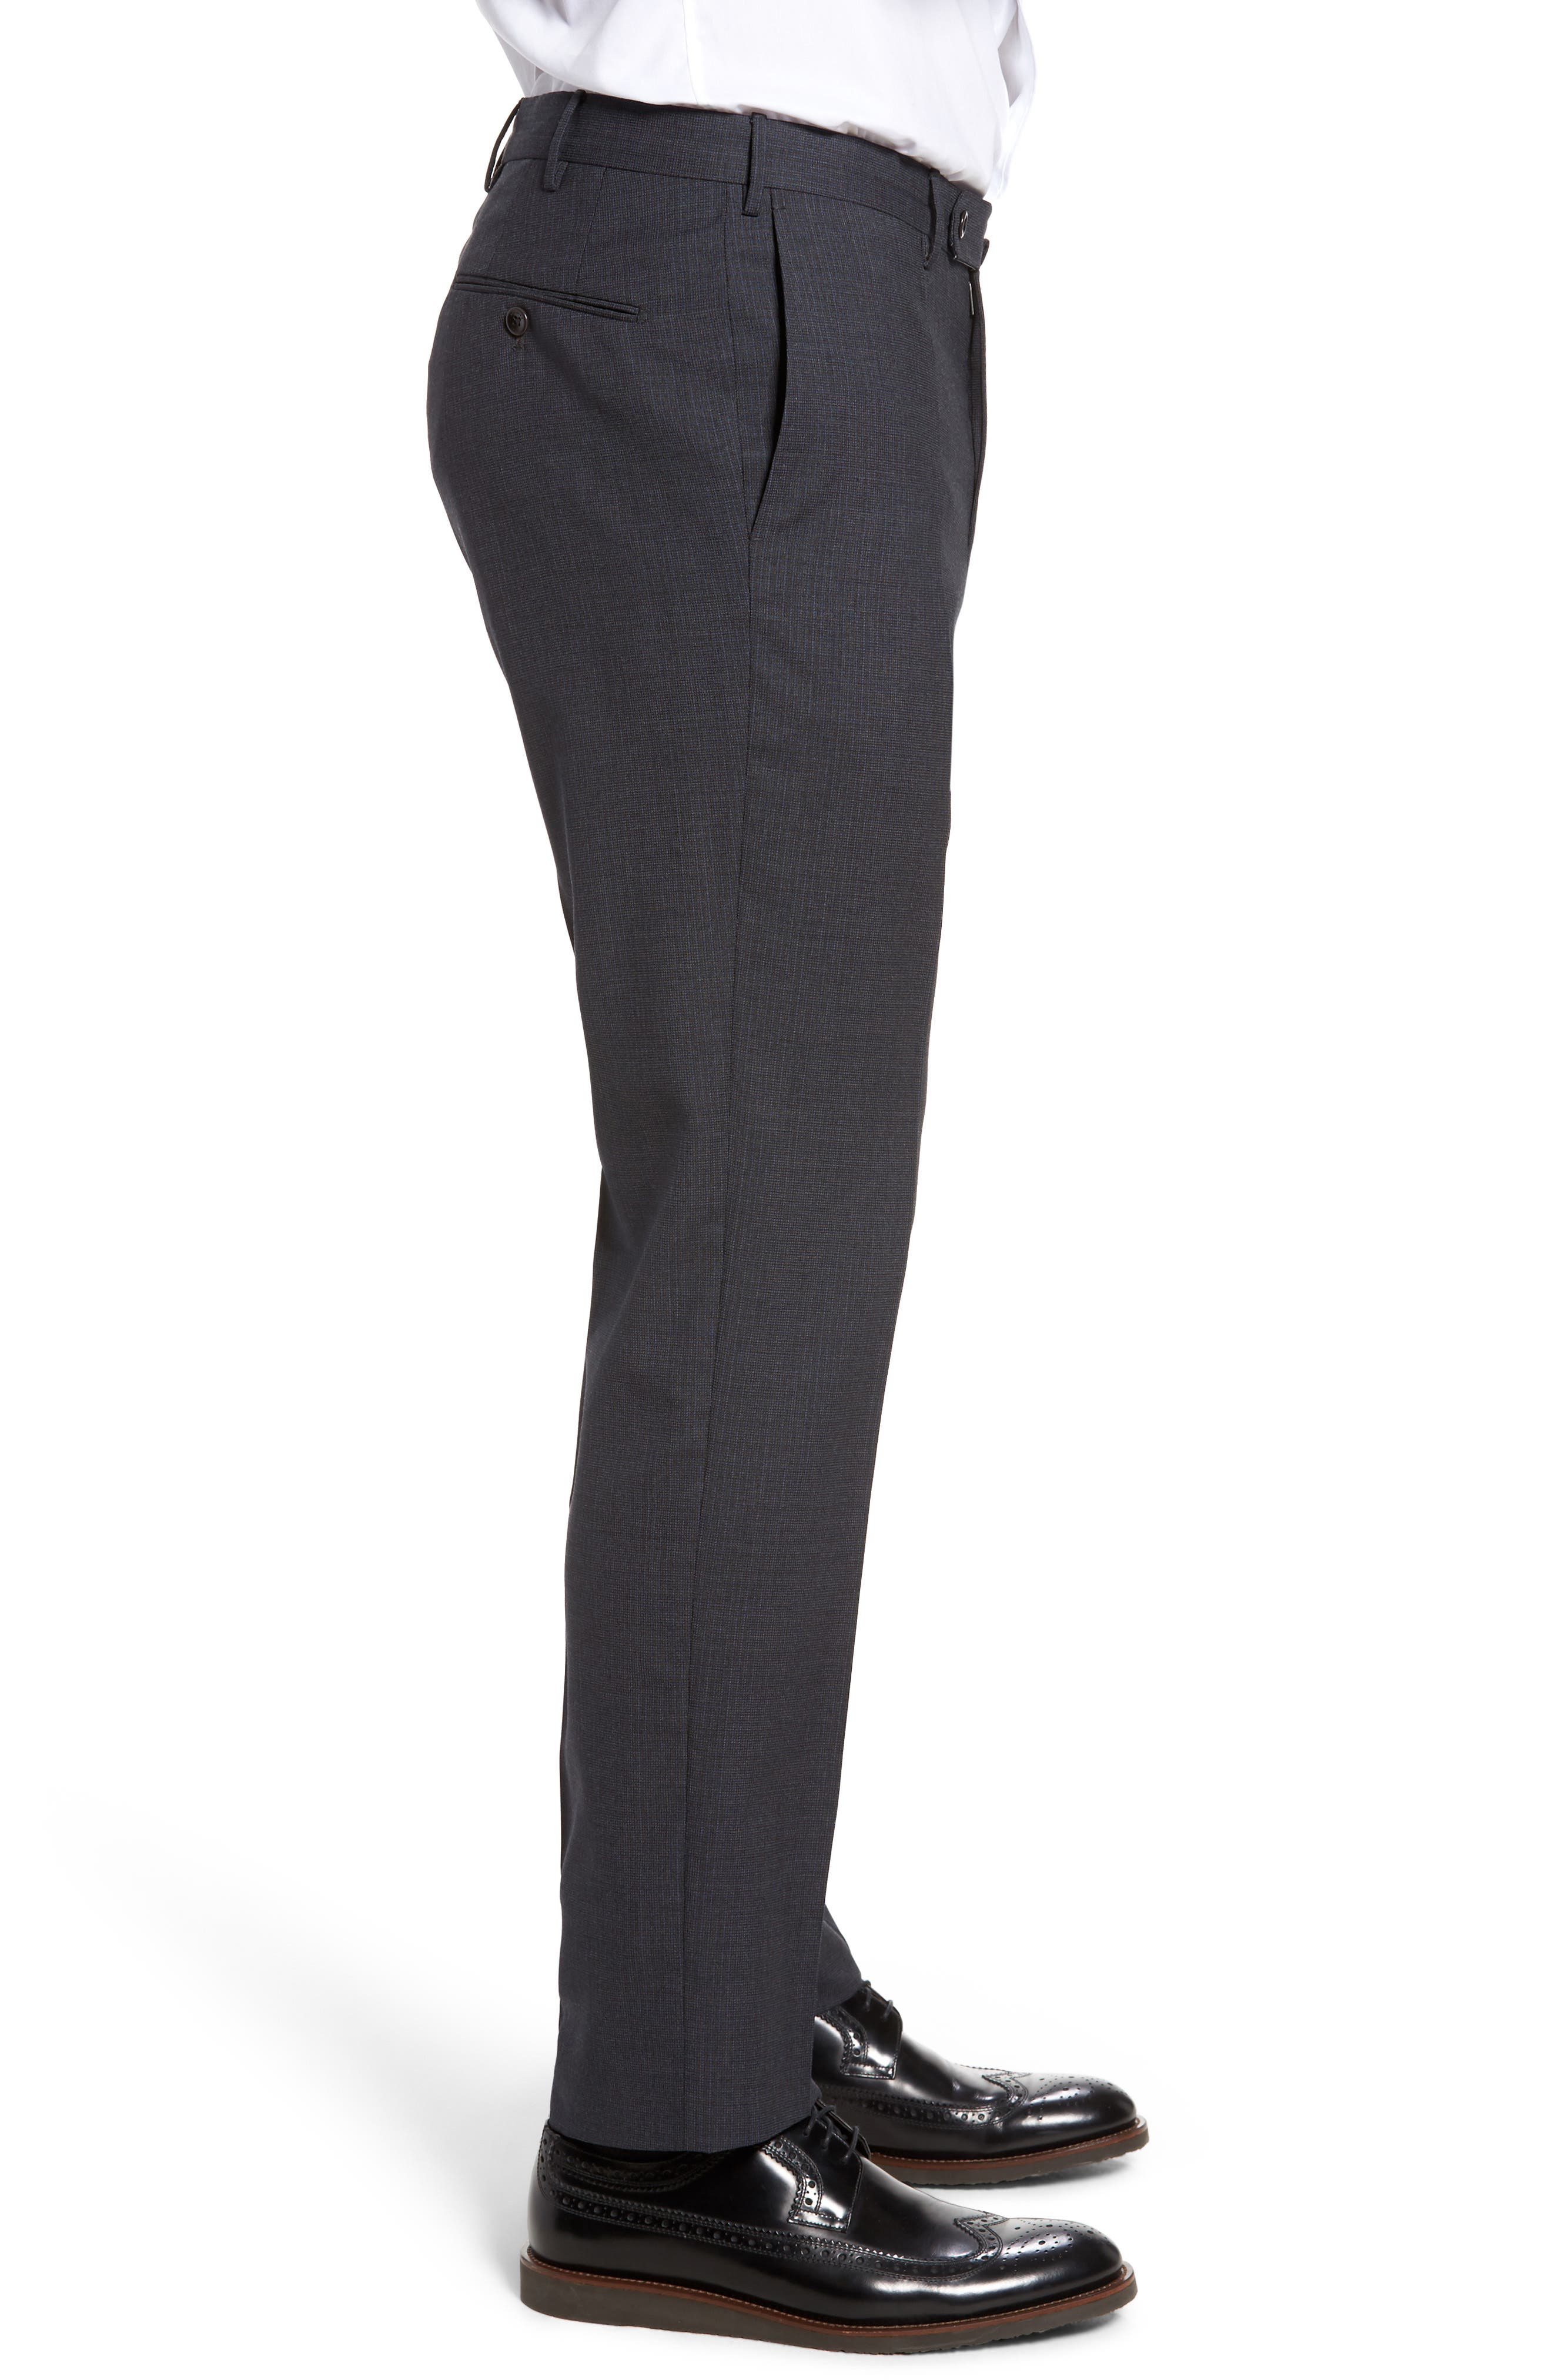 Benson Flat Front Wool Trousers,                             Alternate thumbnail 4, color,                             015